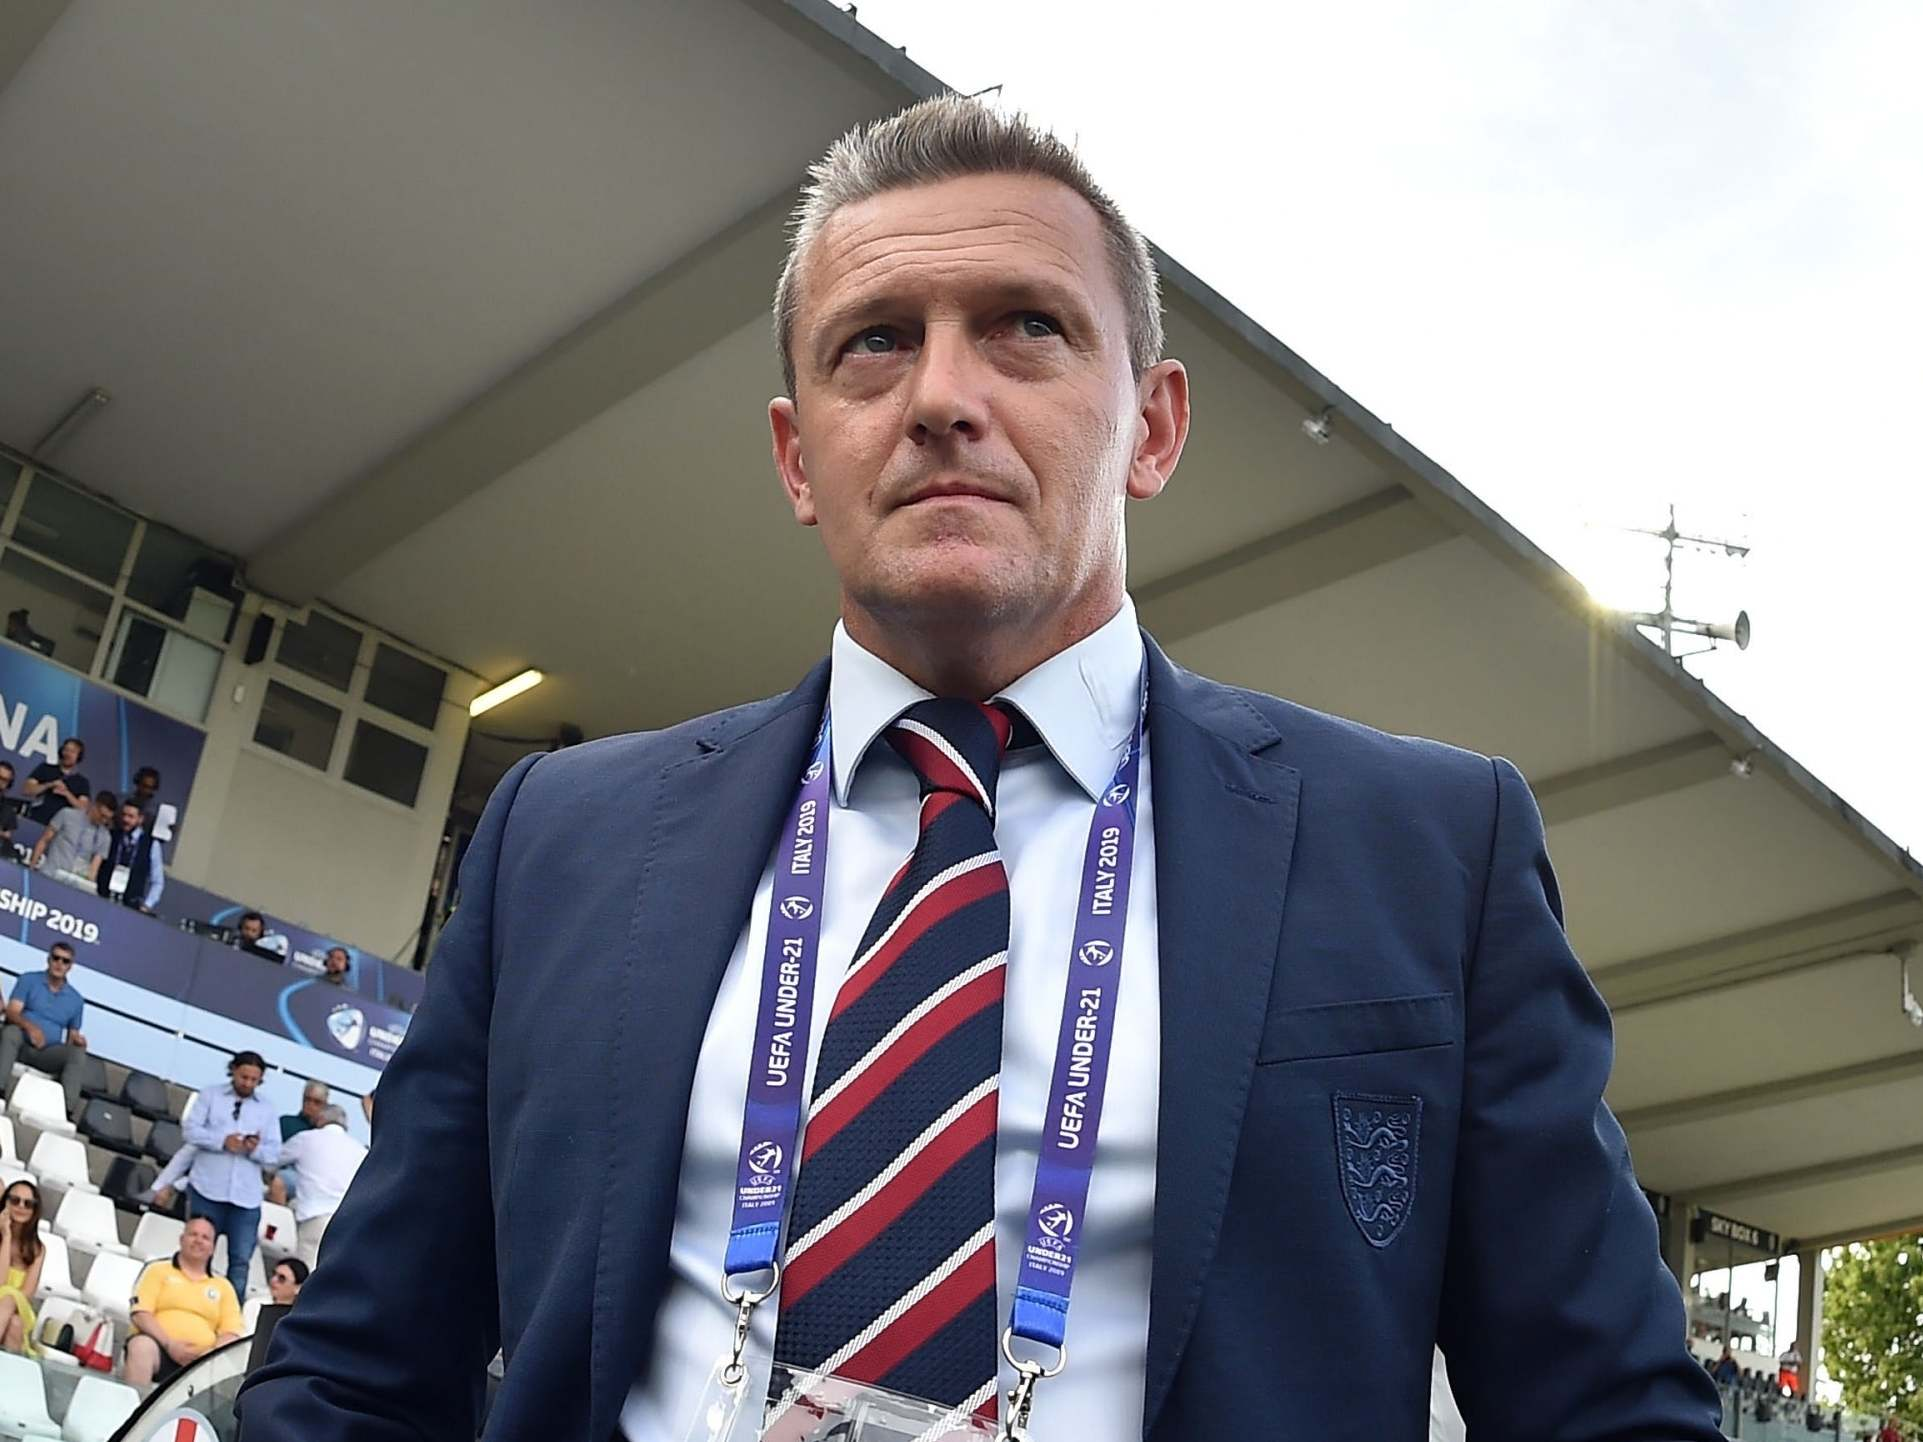 Euro 2019: Aidy Boothroyd refuses to walk away after England Under-21s tournament exit